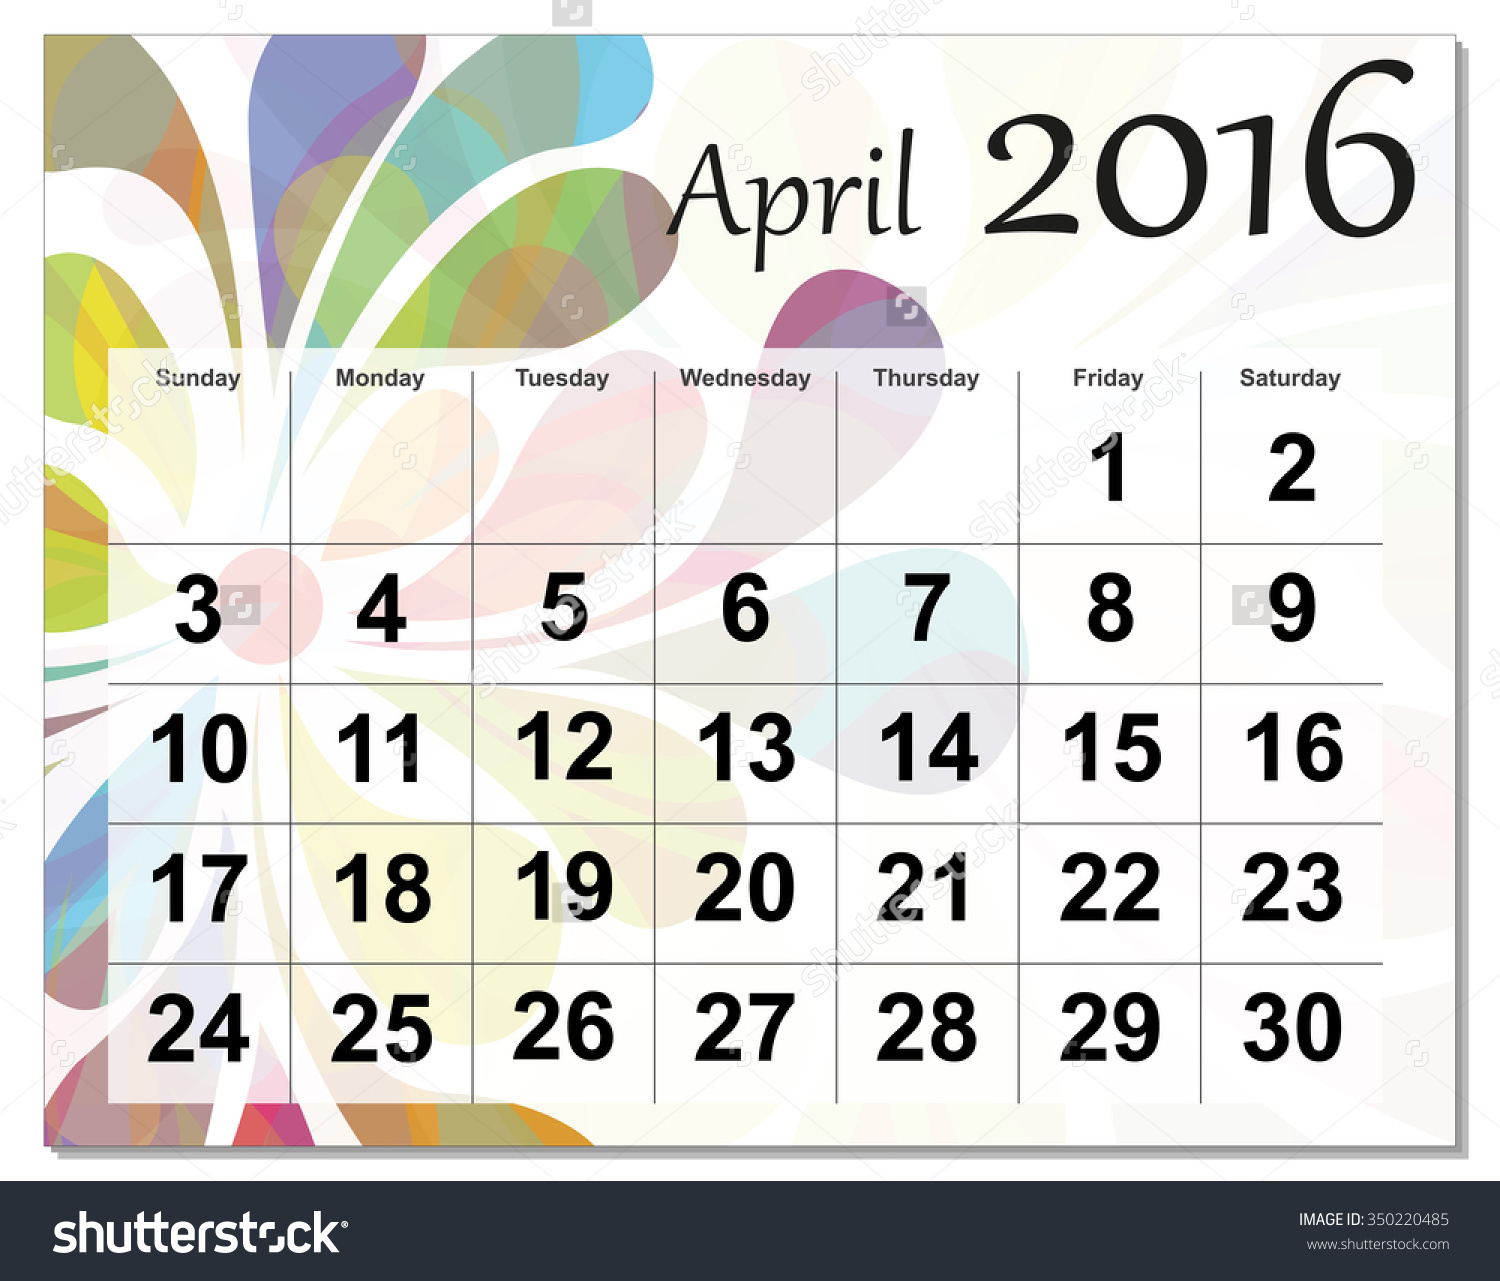 Clipartfest save to a. April 2016 calendar clipart